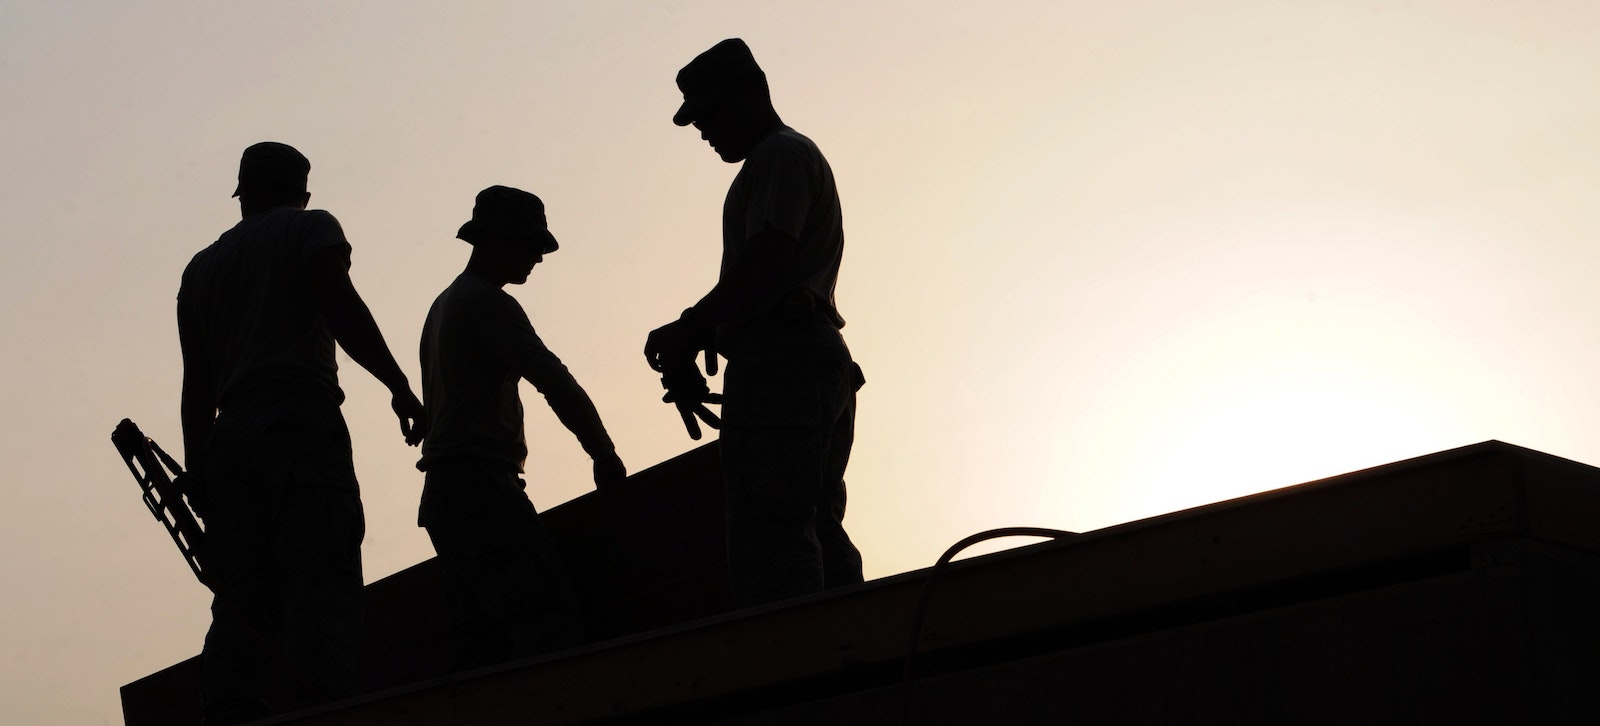 How to Attract Skilled Trades Talent in Today's Tight Labor Market